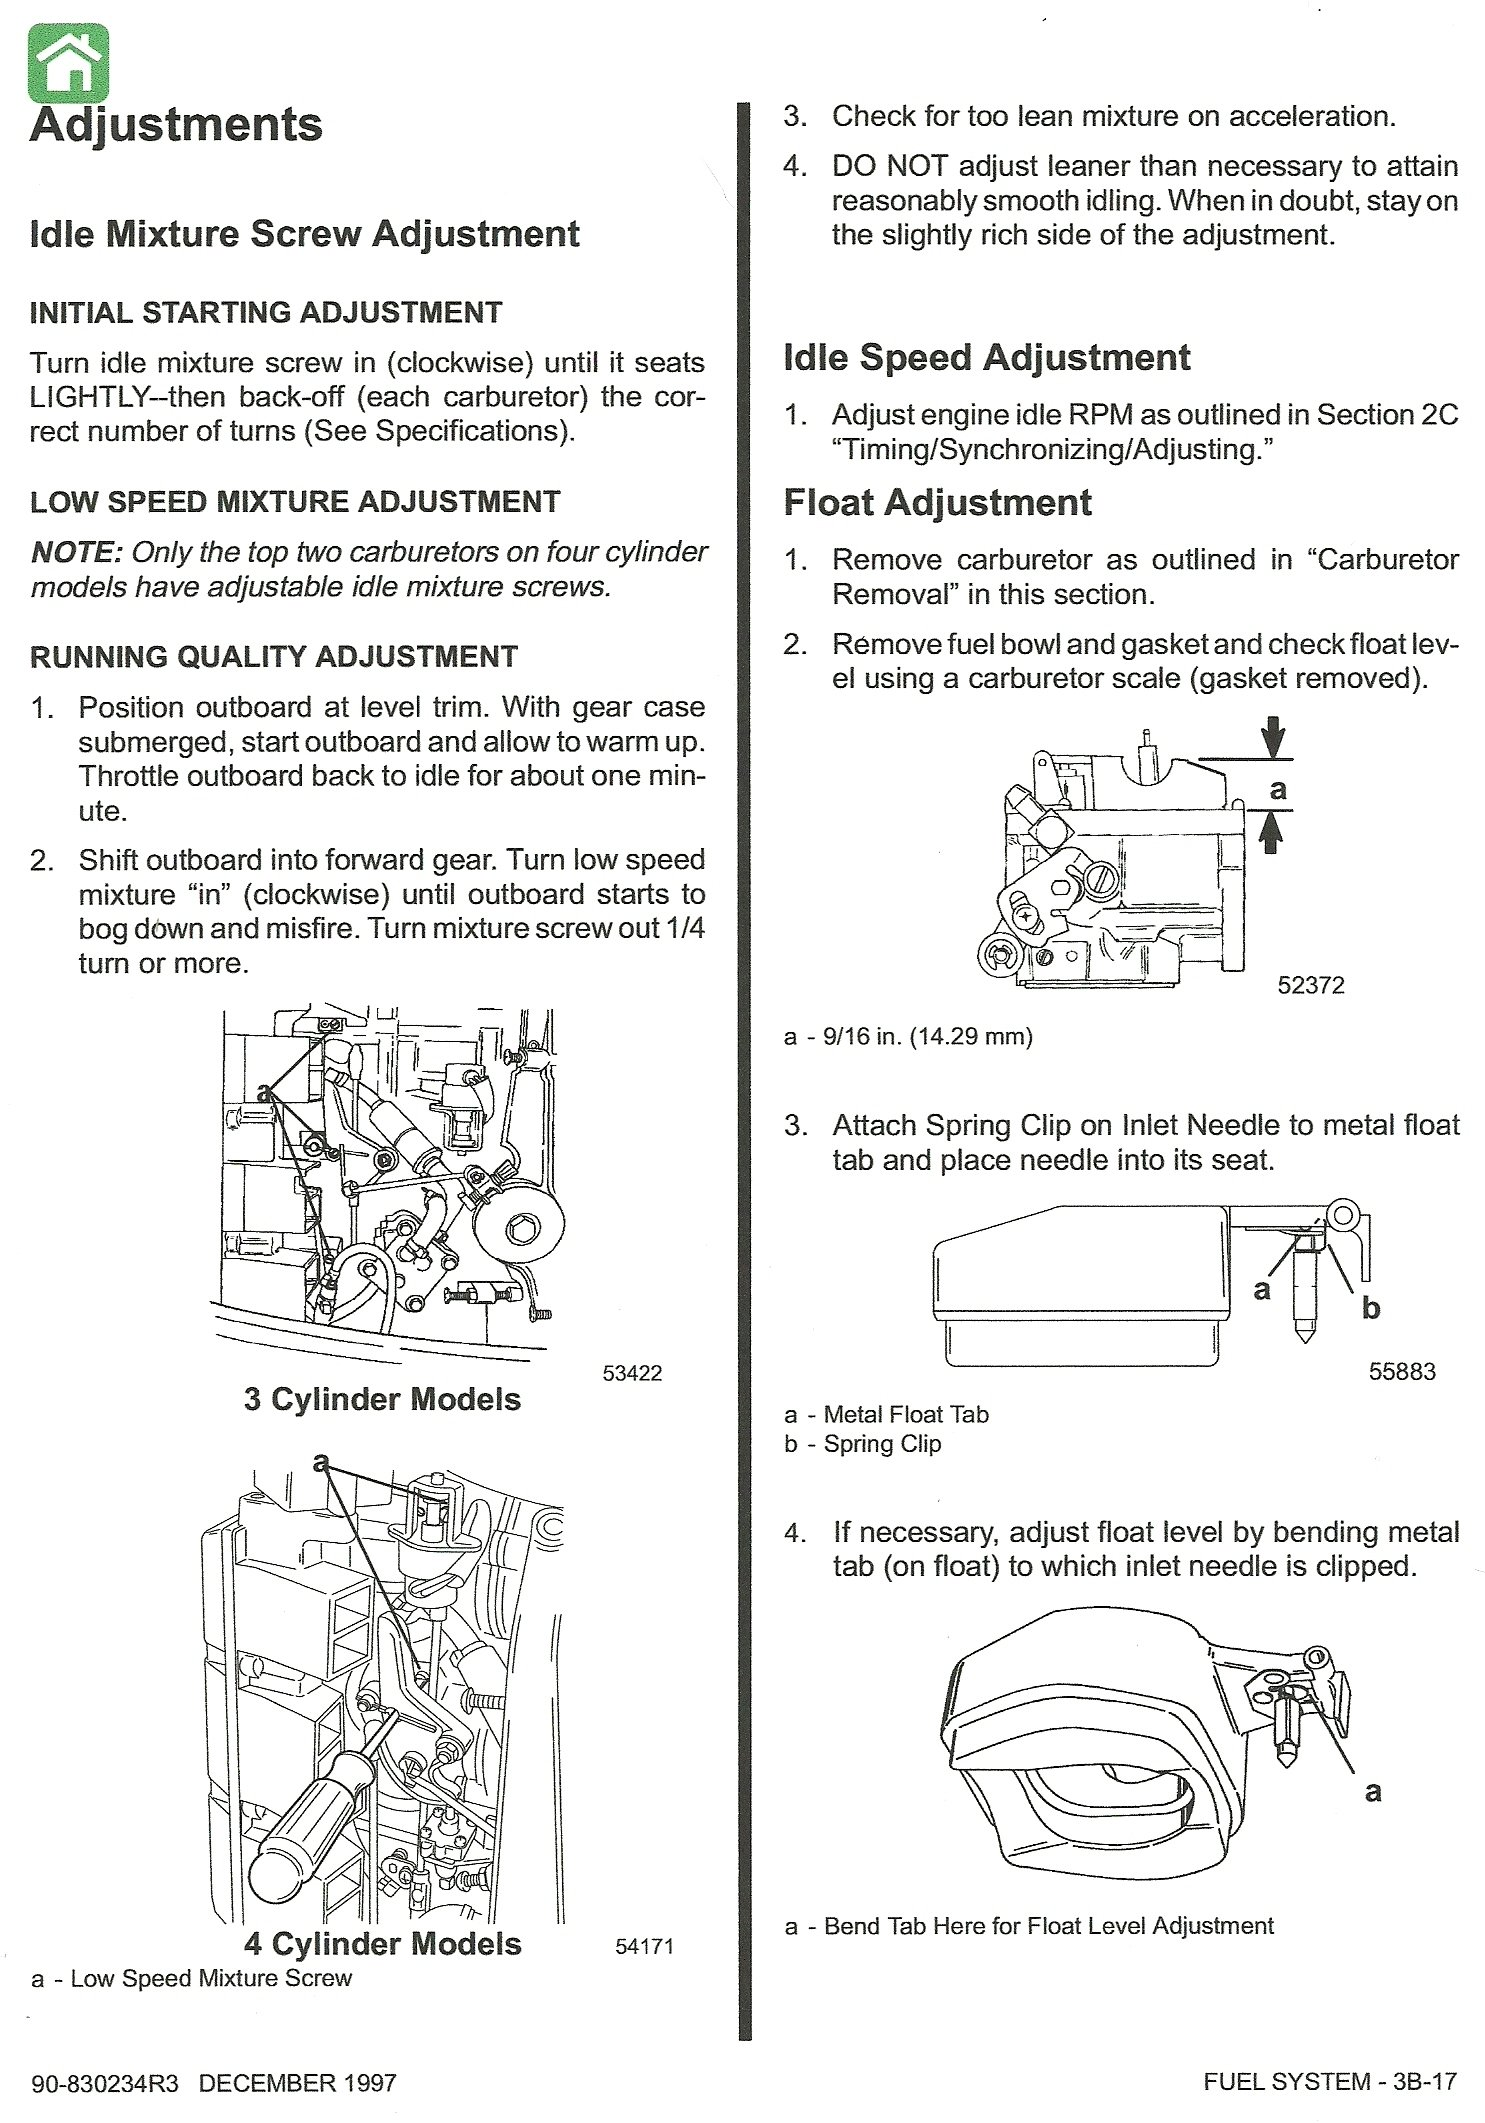 I Need A Diagram For Mercury 93 115hp Fuel Reciruation System Of 8 2 Cyl2strokeinternational Outboard There Are Two Carburetors That Have No Idle Circuit The Bottom Cylinders Do Not Pick Up Until Engine Is Under Loadthe Runs On At